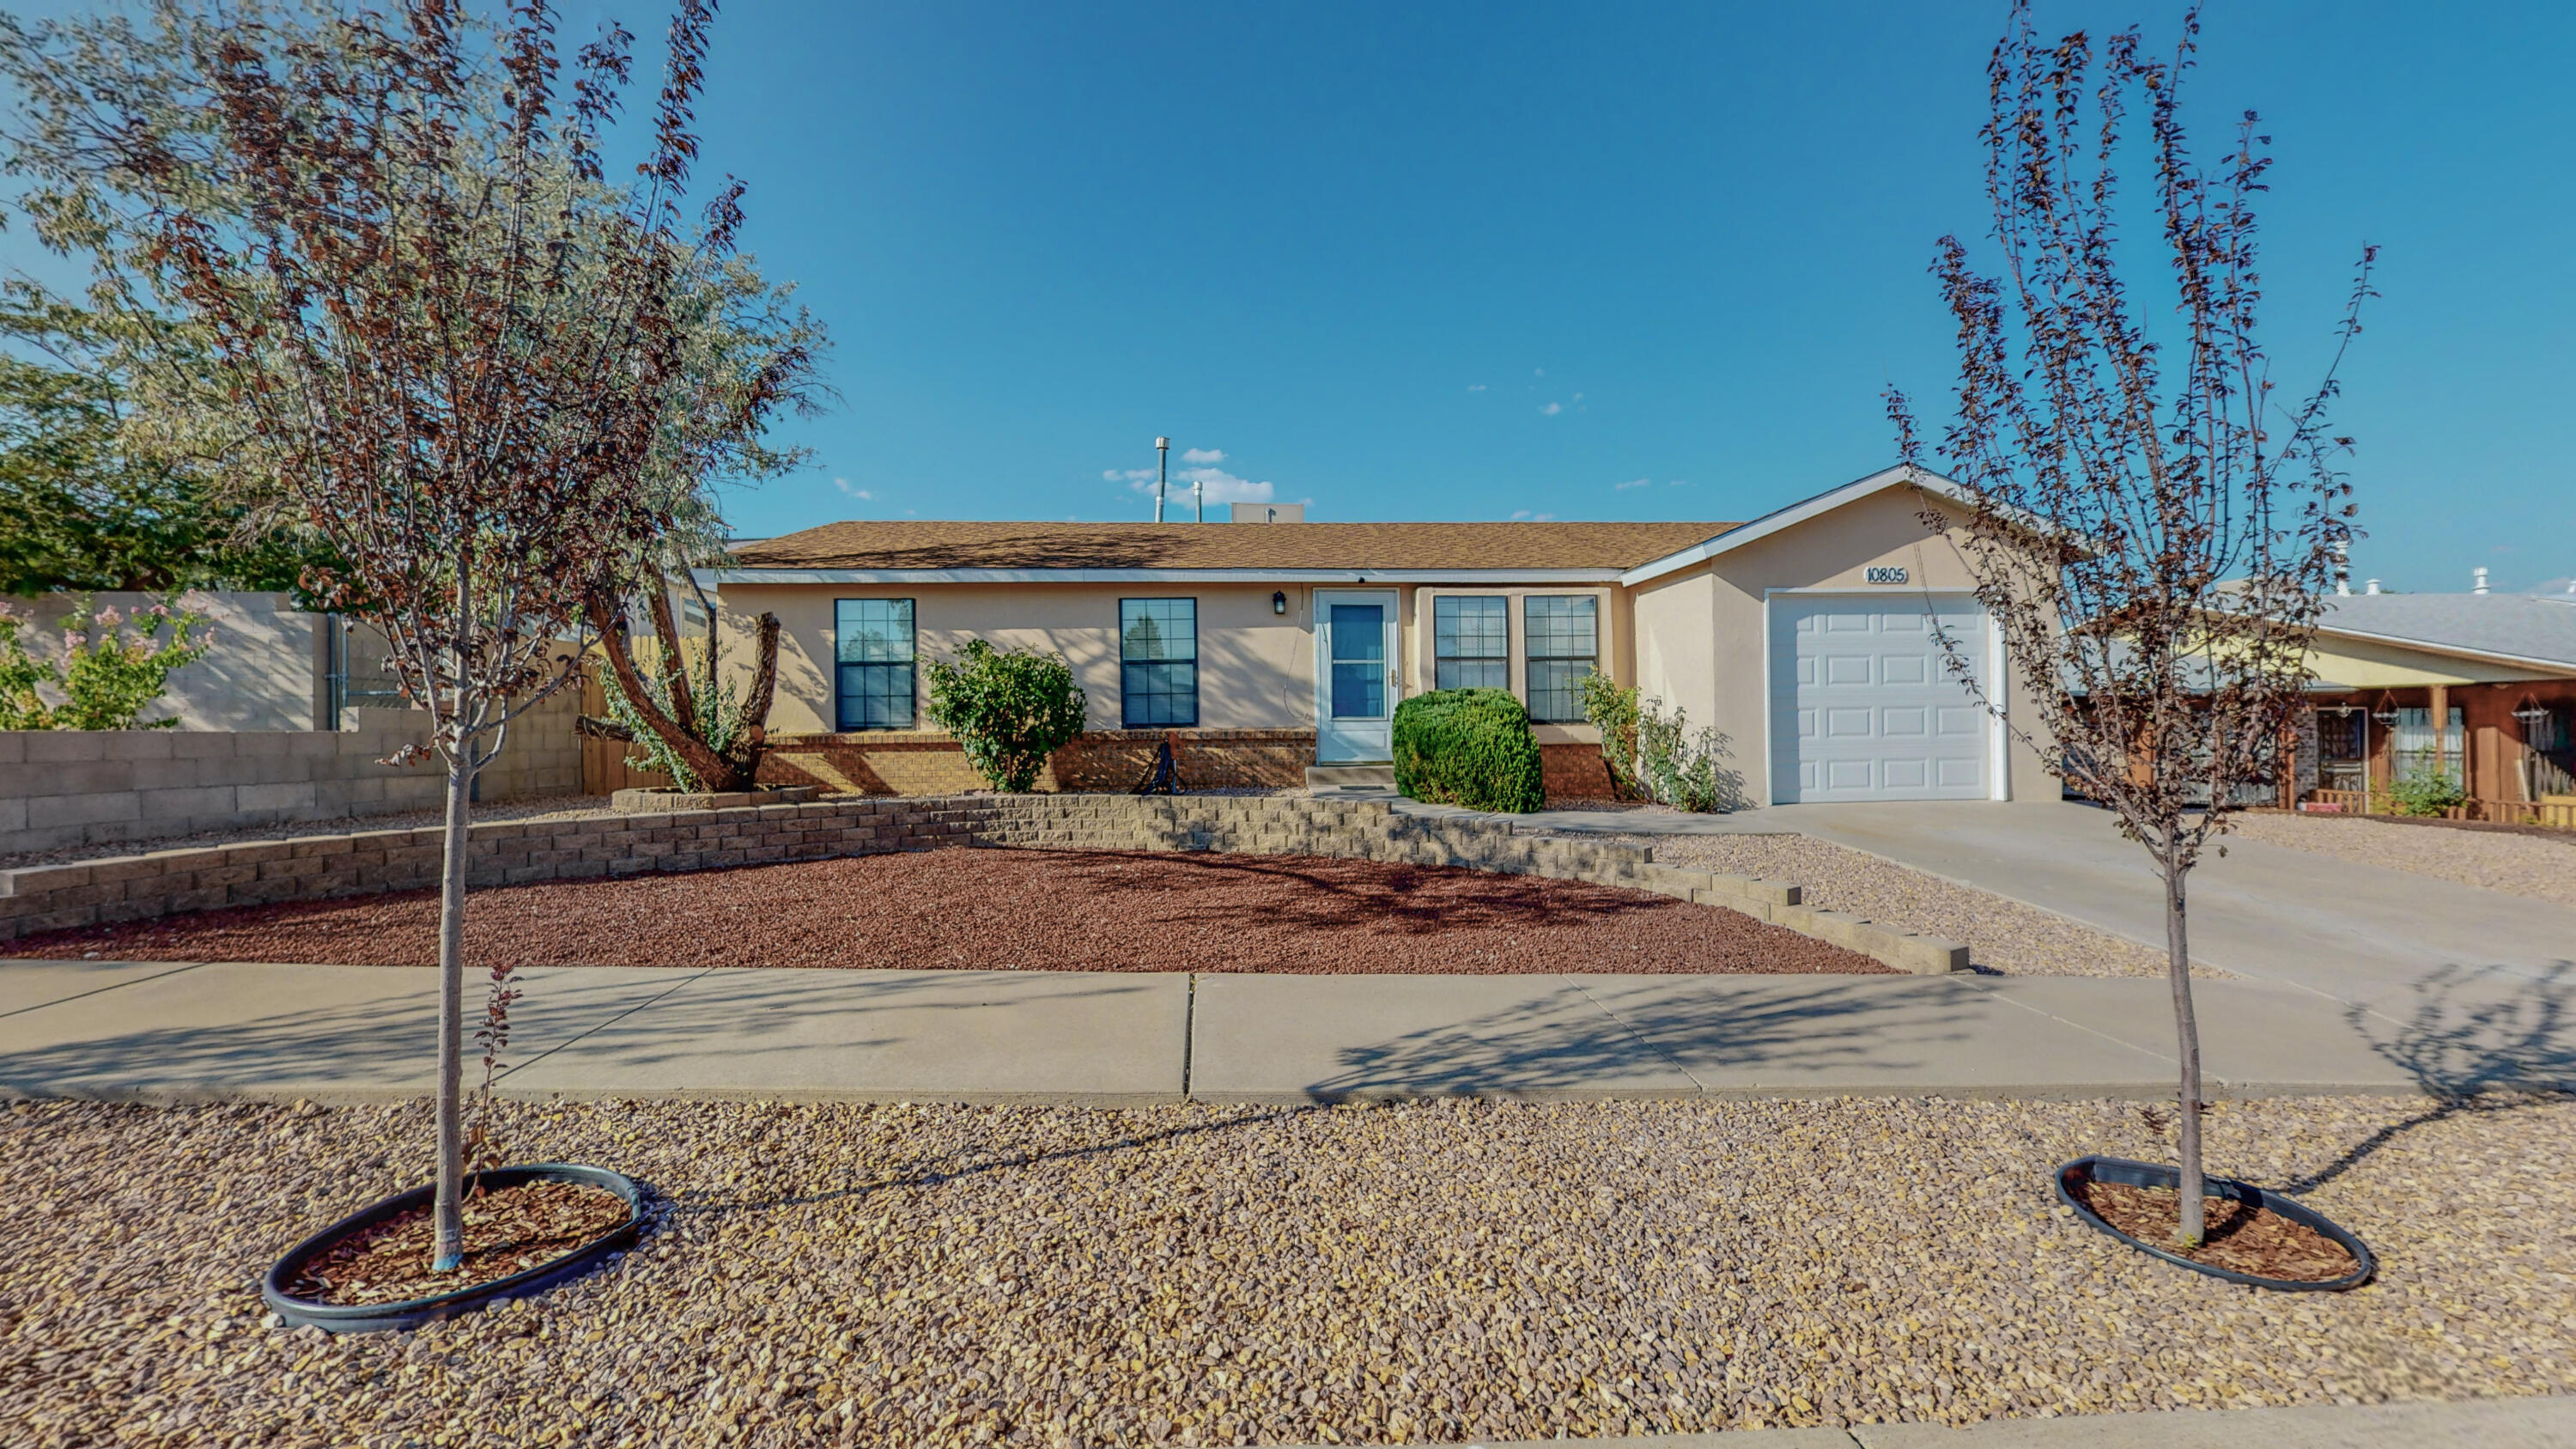 Welcome Home to this GEM in the beautiful Westgate Heights neighborhood! This home has been meticulously cared for! Beautifully landscaped and low maintenance front yard with backyard access. Some upgrades include New stucco, gutters and privacy trees planted in back, new washer and dryer, updated sinks in the bathrooms, newer heater and mastercool cooler, and newer doors on all the rooms. The kitchen catches the eye with the added granite countertops and beautiful large copper farm sink! The home has also been completely repiped and all poly piping has been removed! Close proximity to Westgate parks and schools! BEAUTIFUL HOME!!!